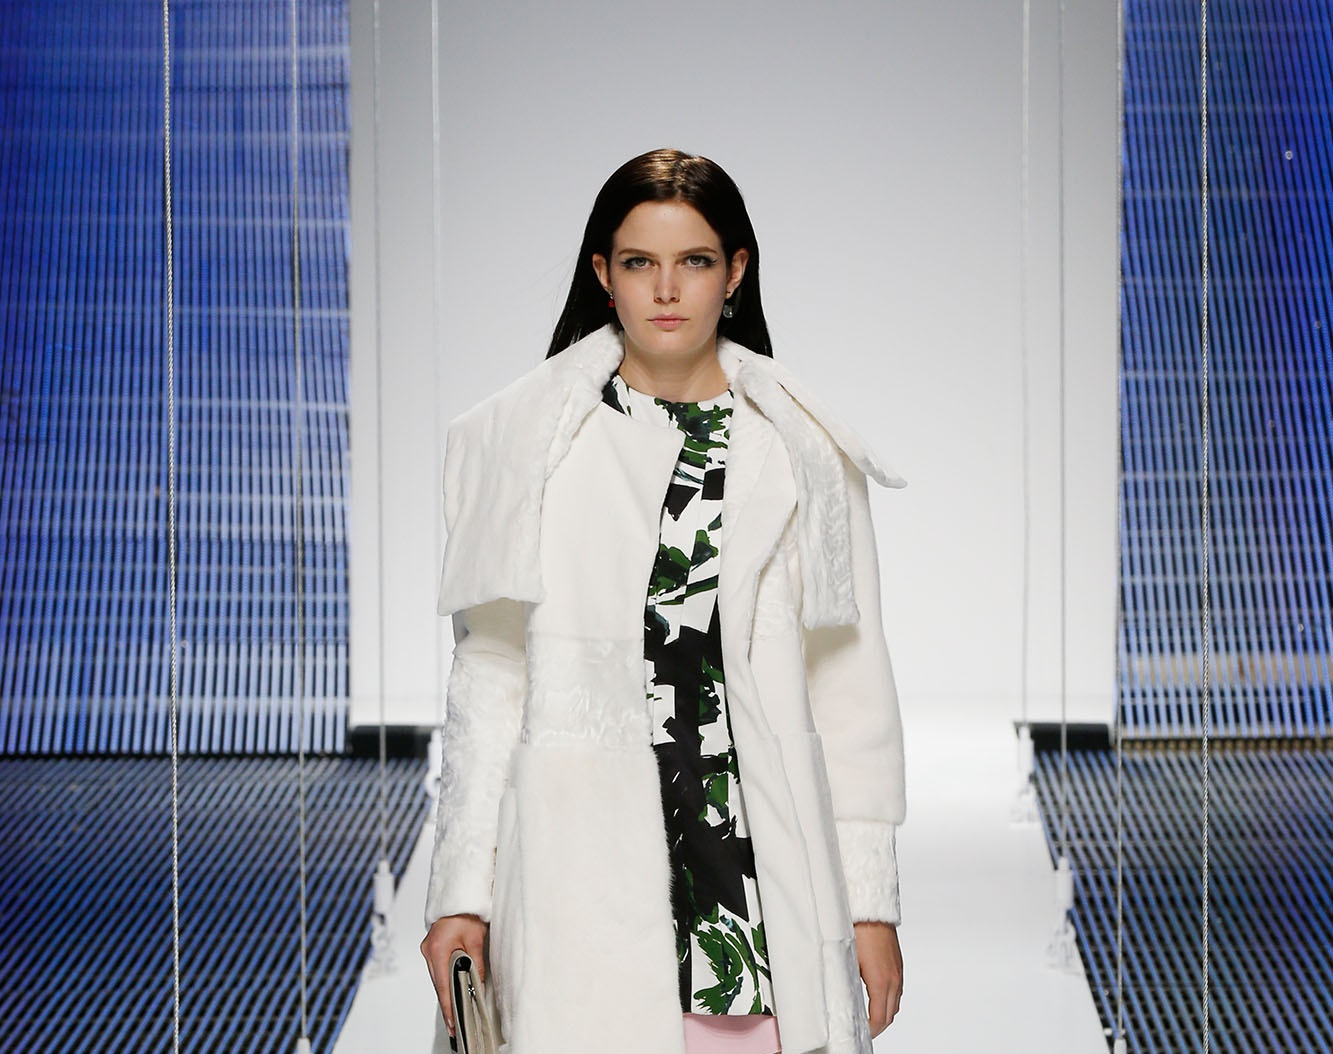 christian-dior-fall-winter-cruise-collection (13)